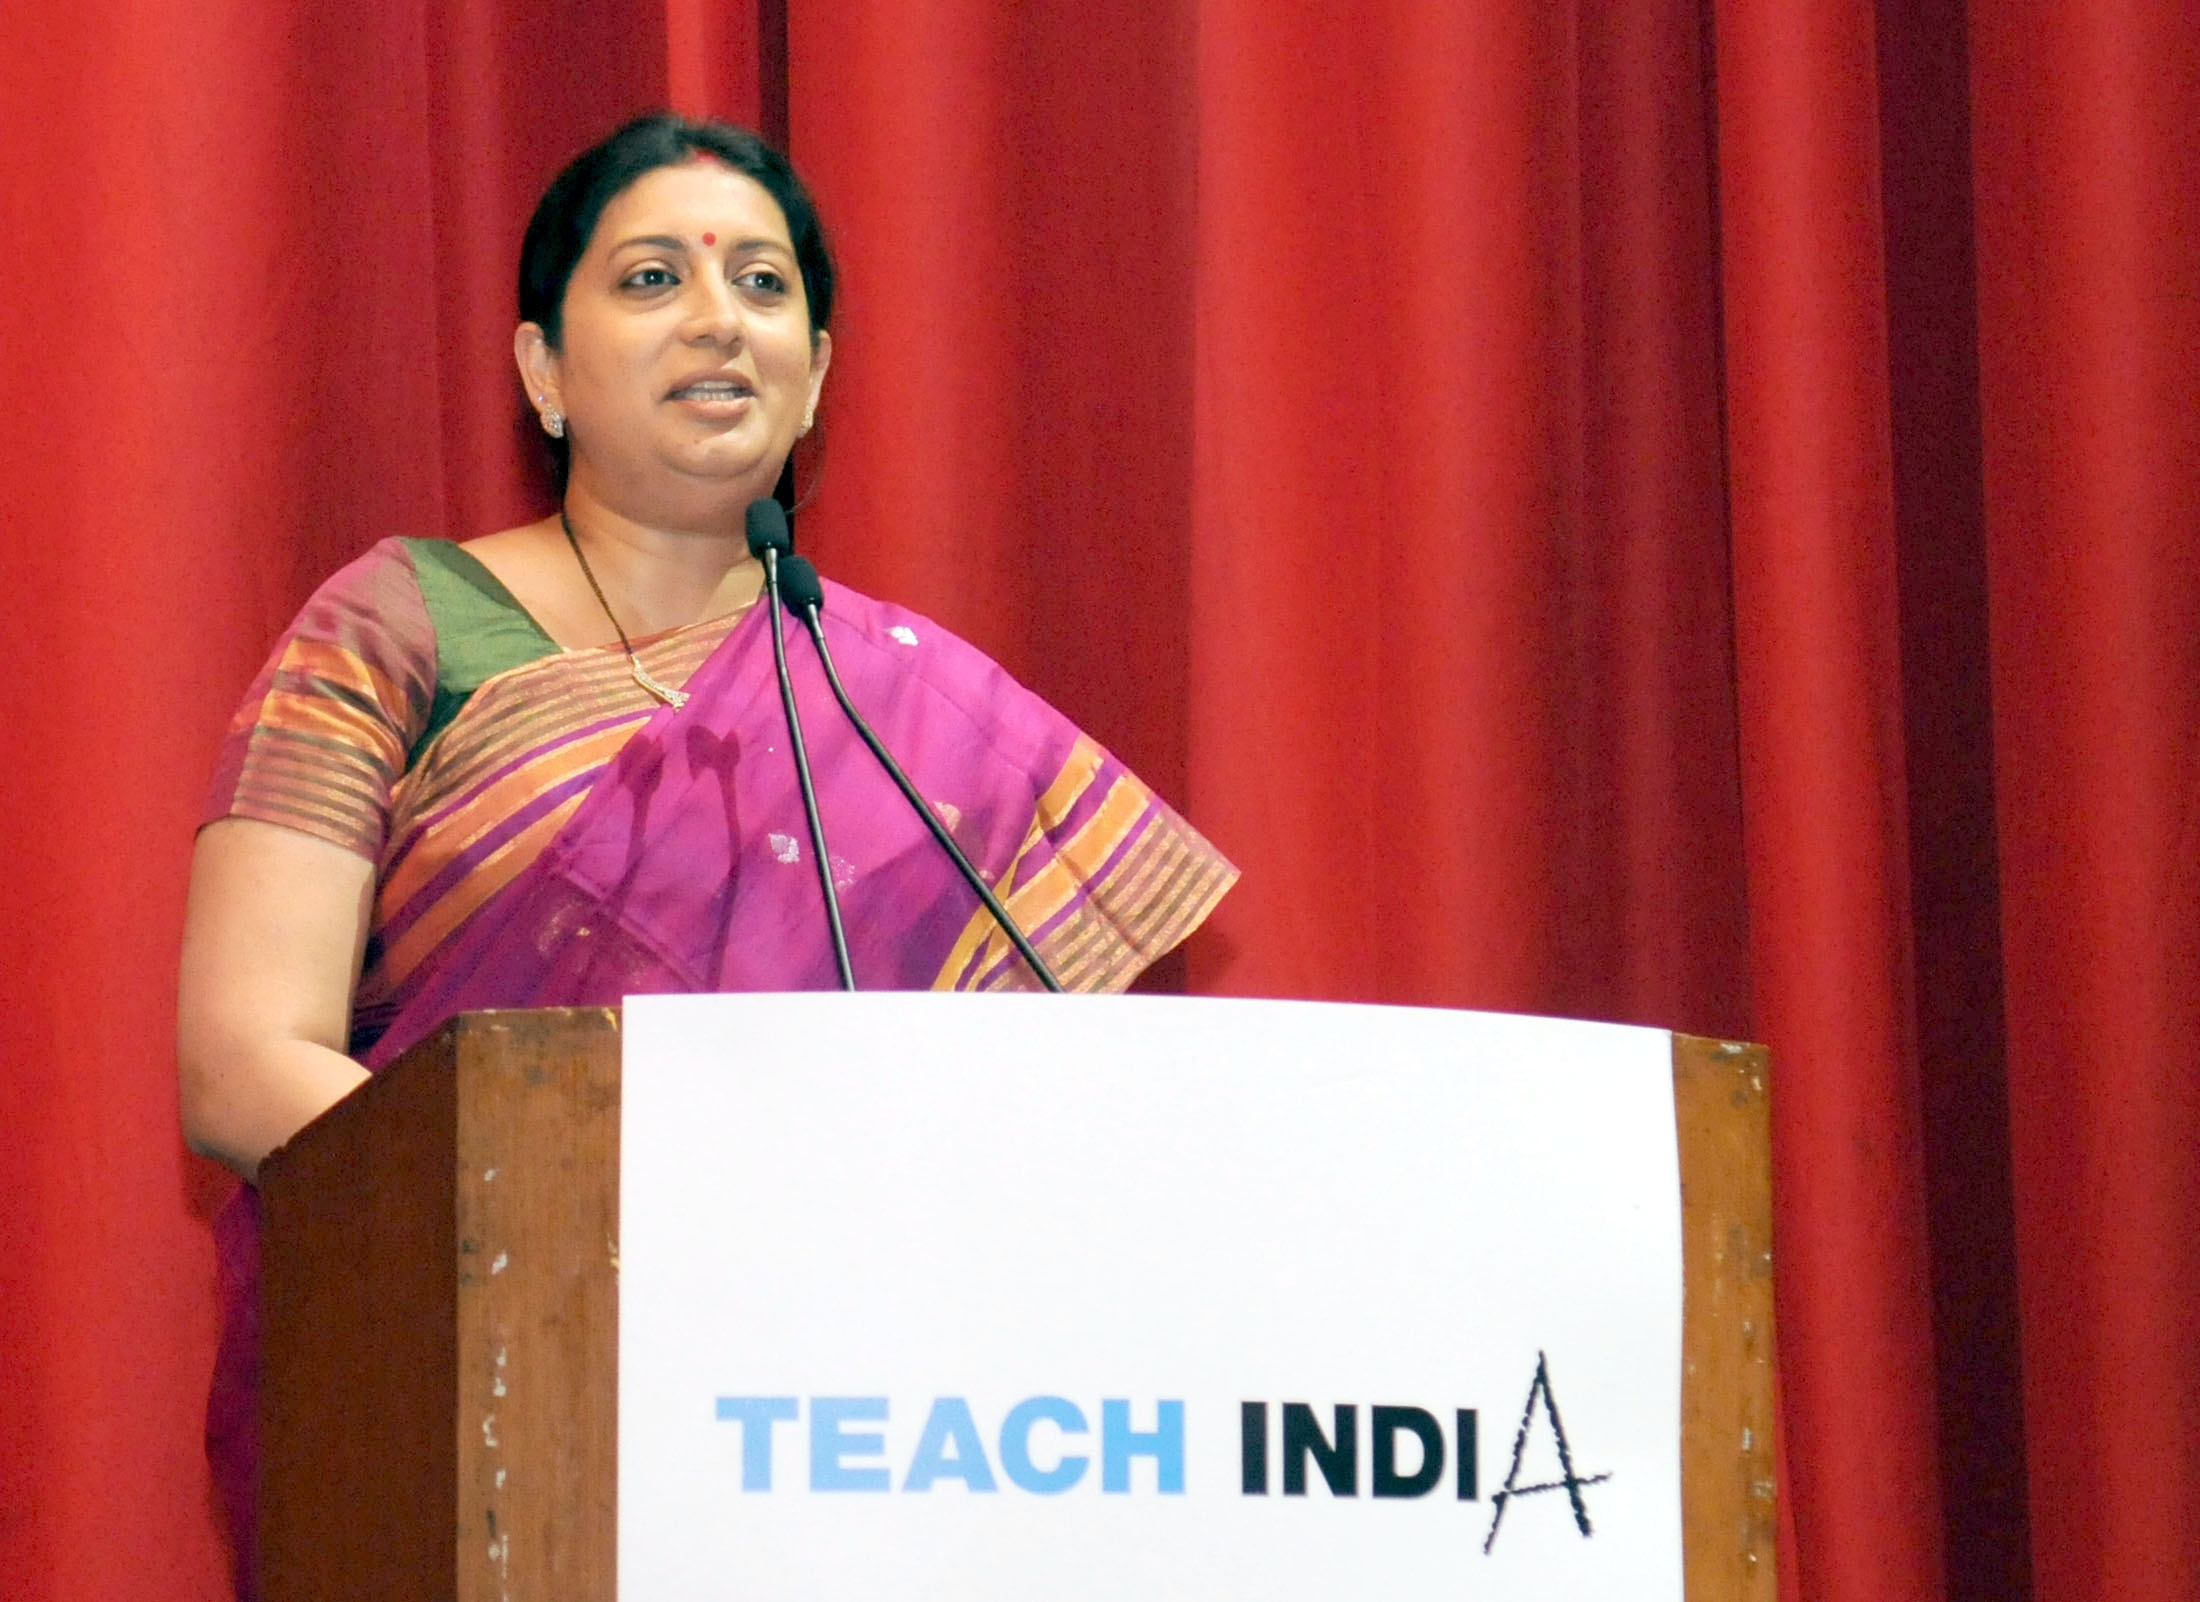 New Delhi: Union Human Resource Development Minister Smriti Irani addresses the Times Group's Corporate Social Responsibility (CSR) programme in New Delhi on June 10, 2015. (Photo: IANS/PIB)